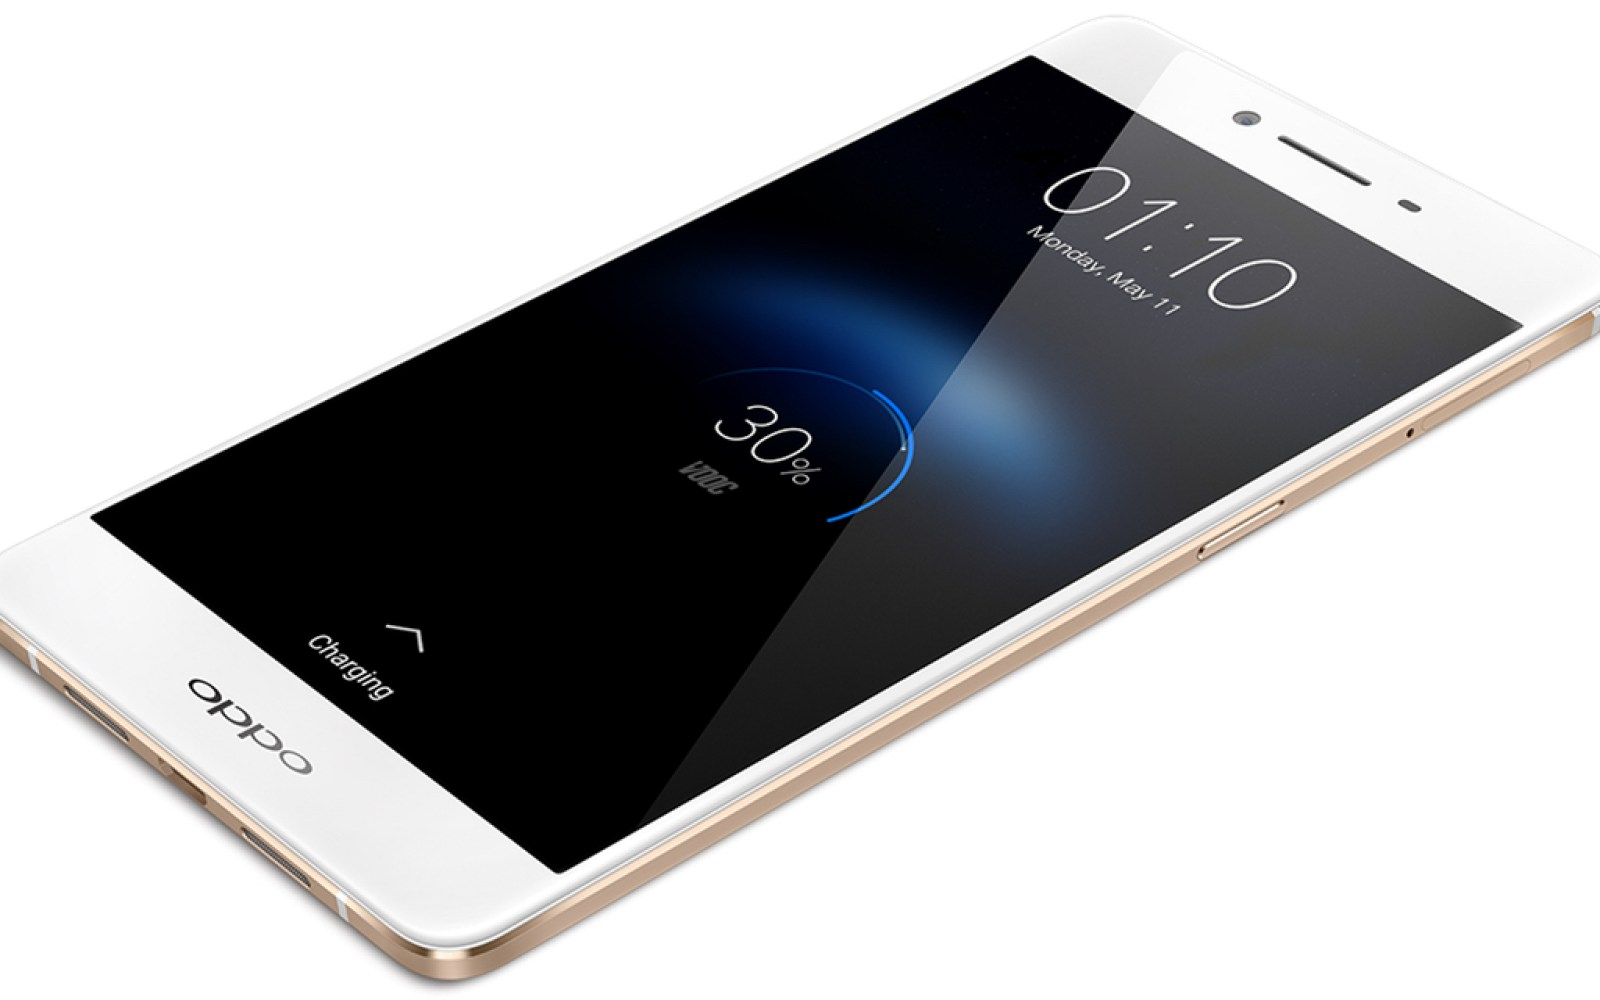 Oppo R7s official, premium design, full HD screen, 3070mAh battery and 4GB RAM in tow